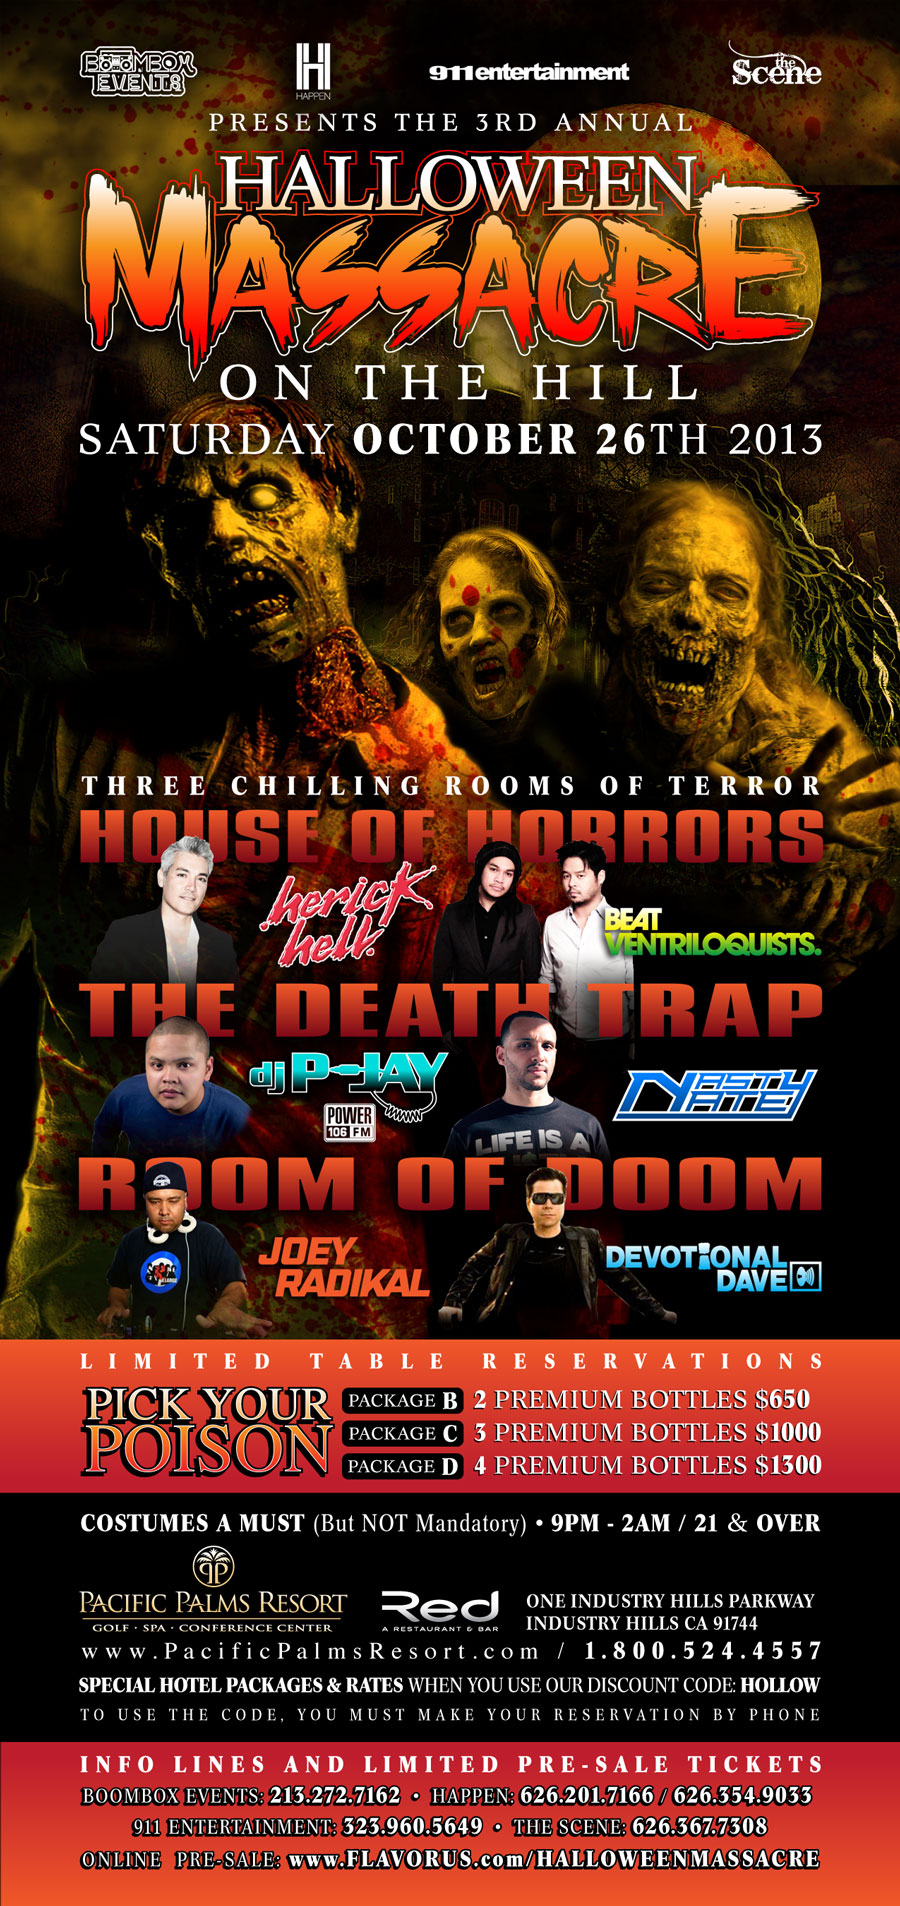 Halloween Massacre on the Hill Tickets - The Pacific Palms Resort ...